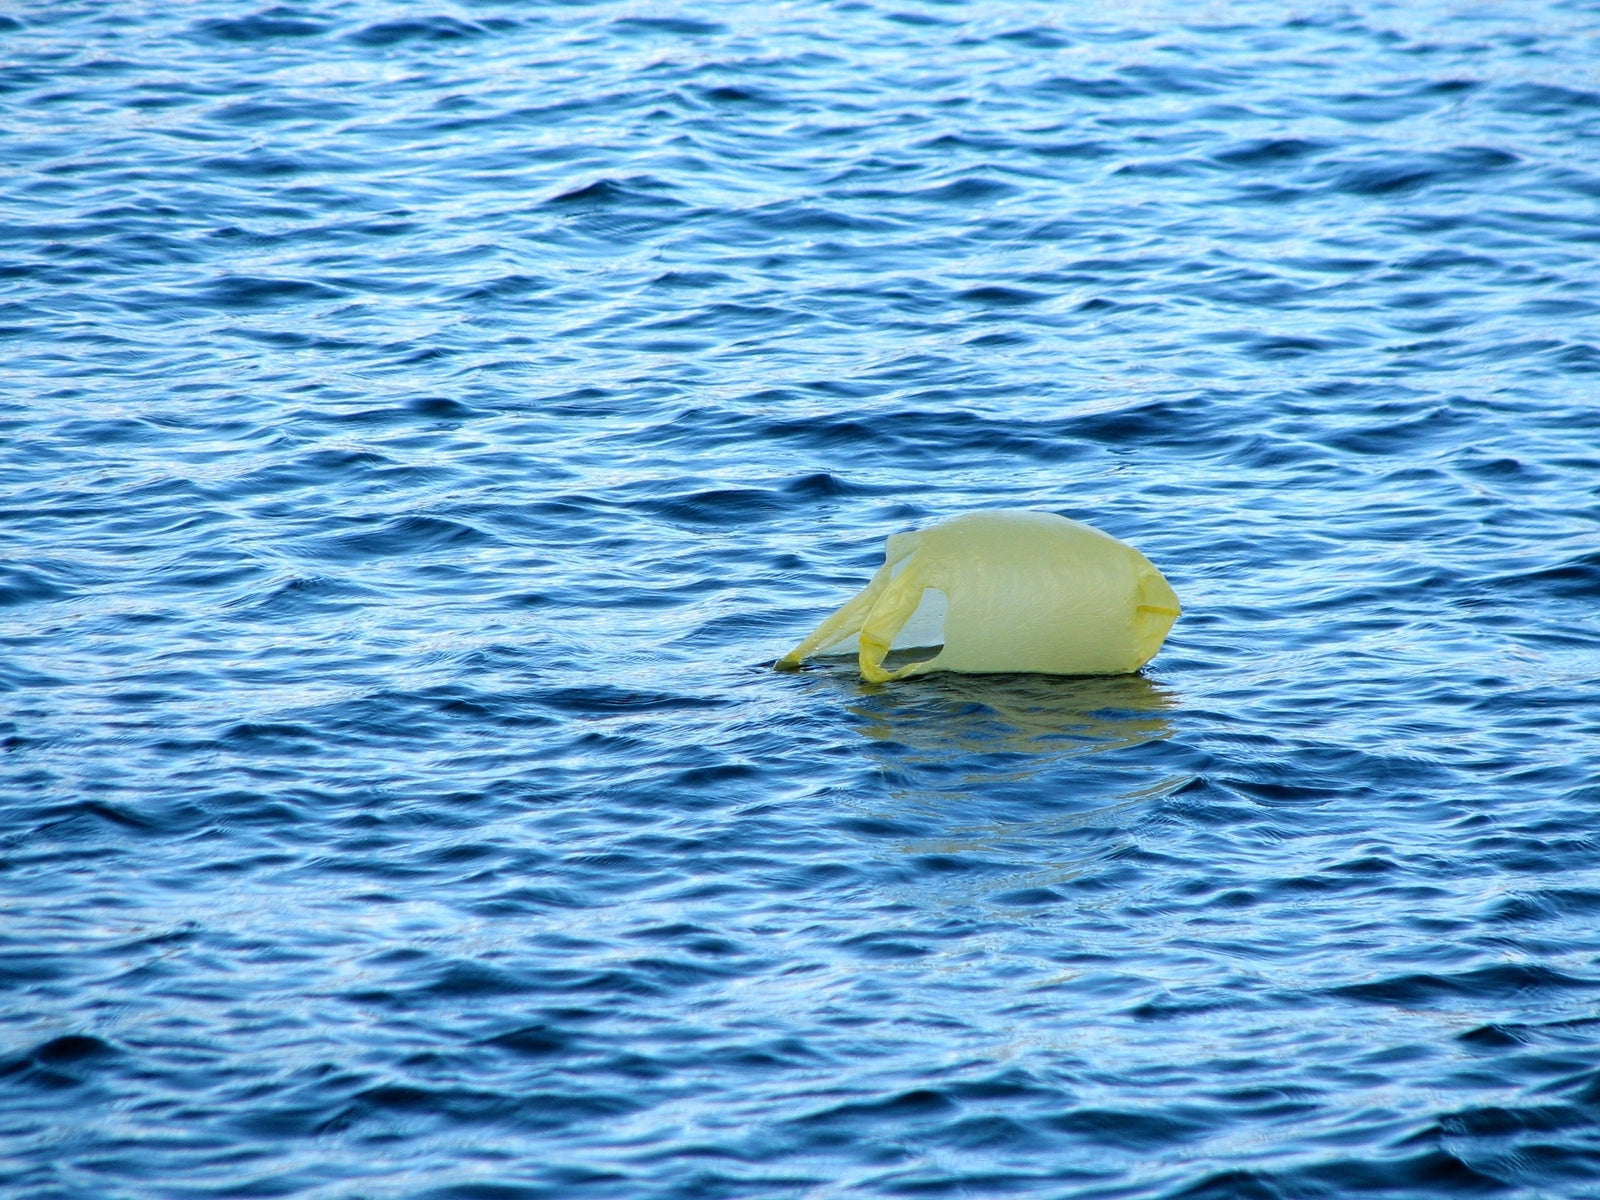 Plastic packet floating in the ocean